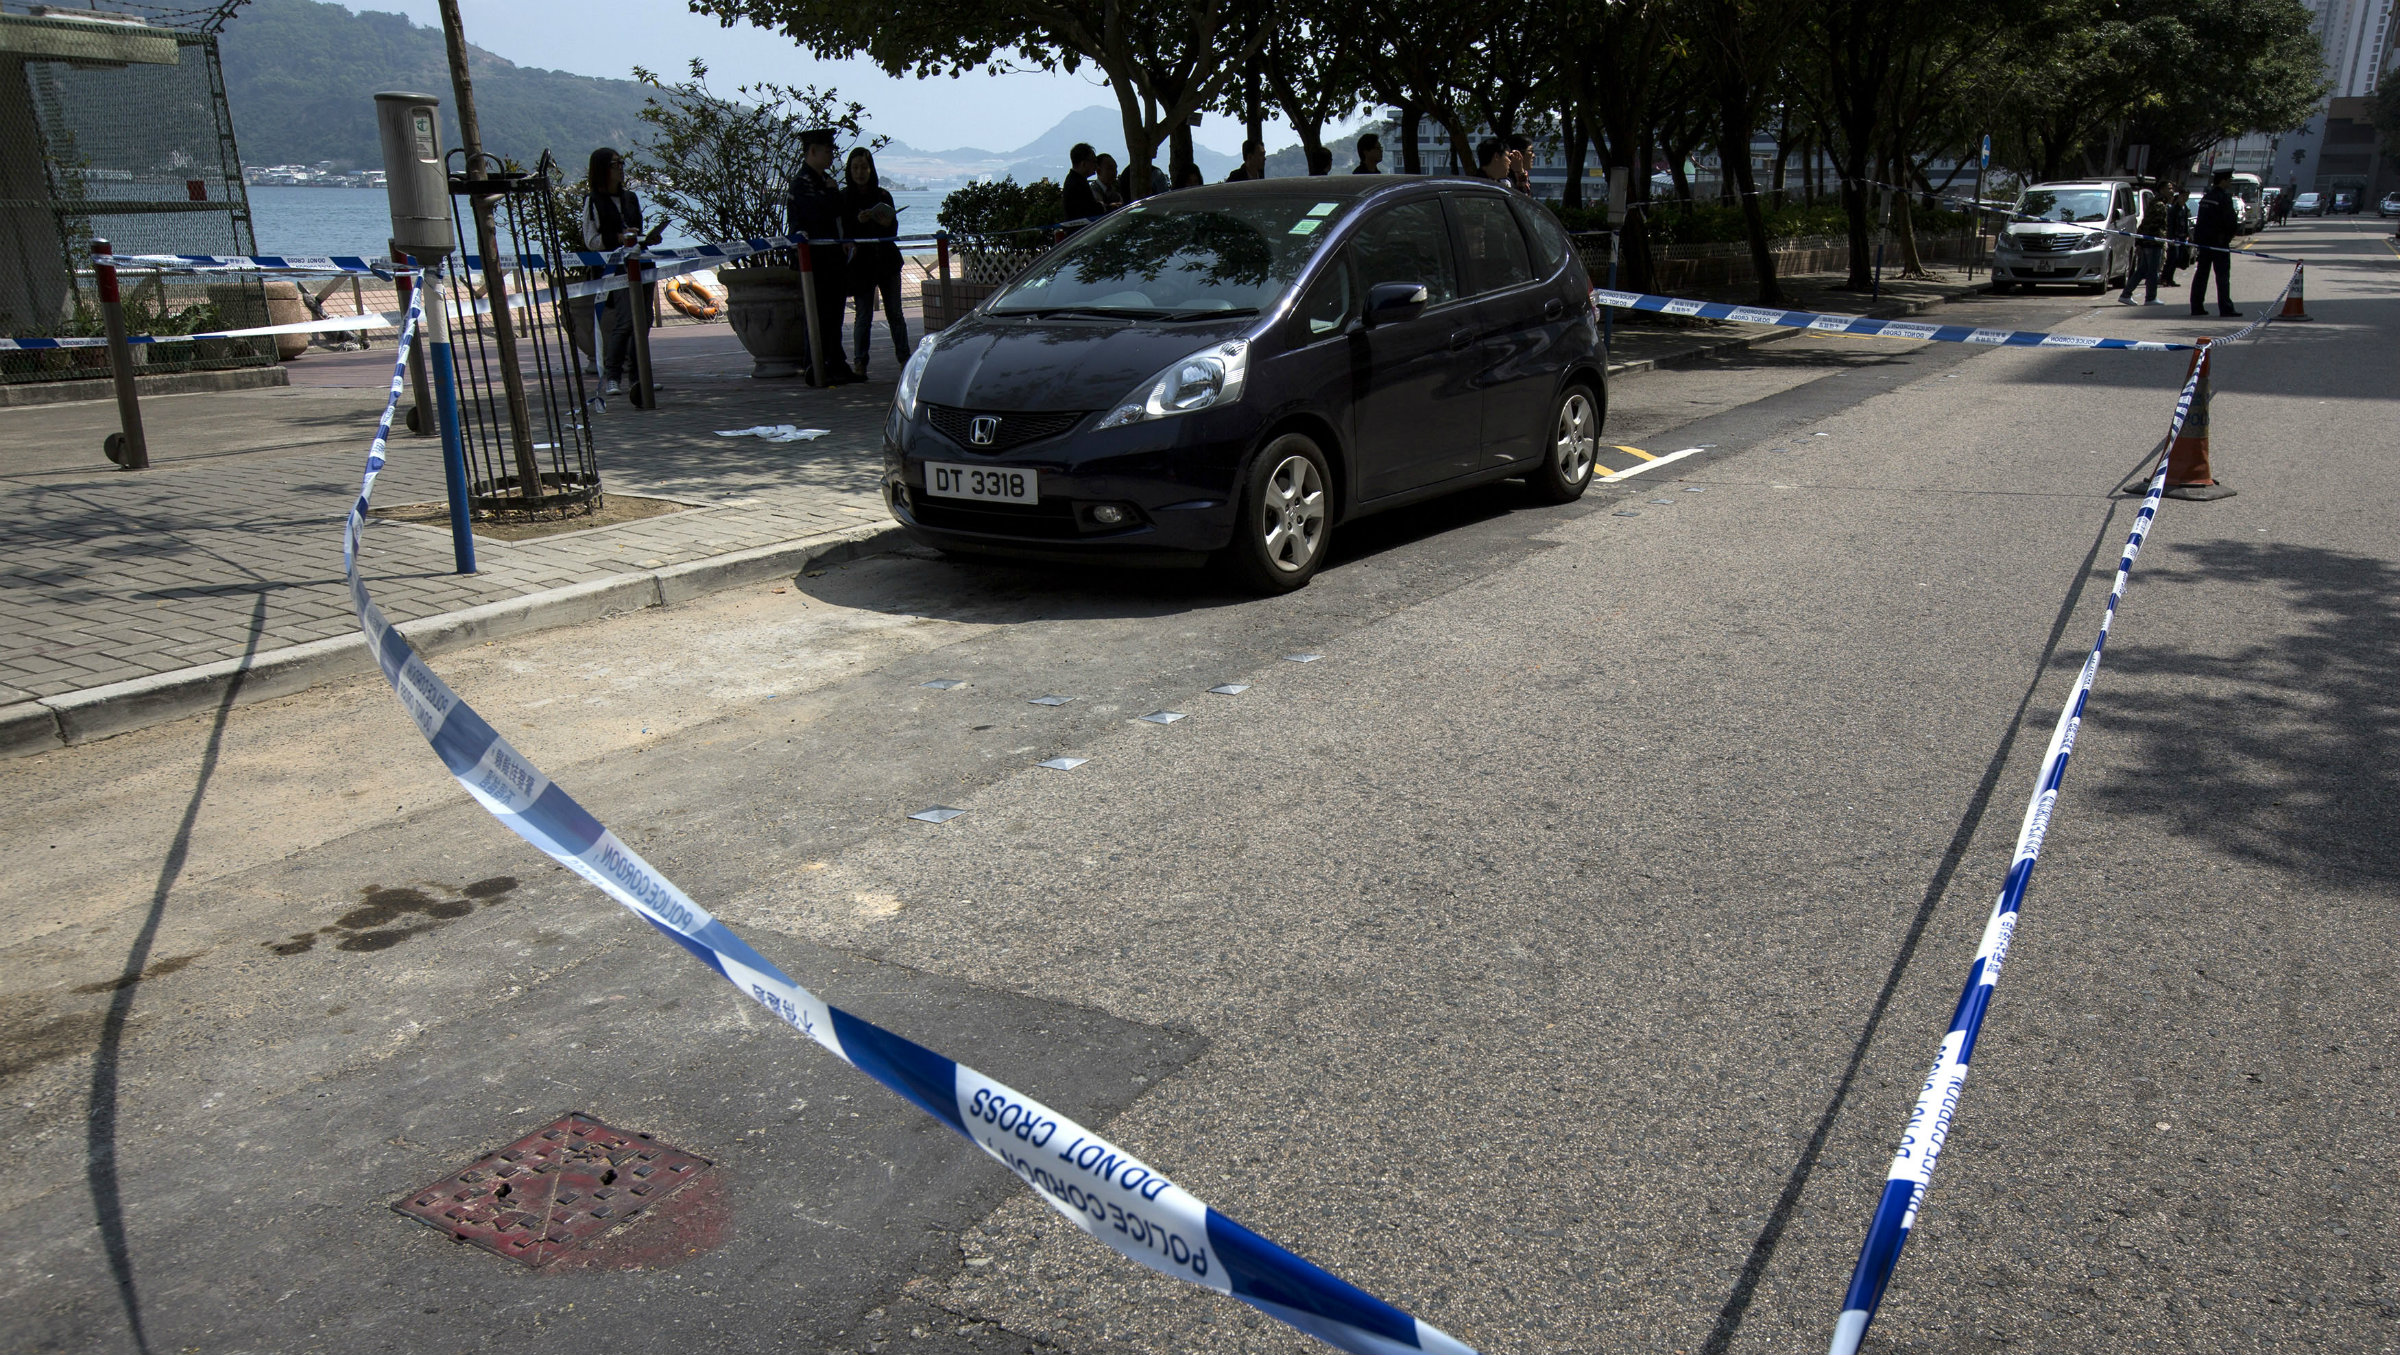 Editor Kevin Lau's car, after he was stabbed in Hong Kong.